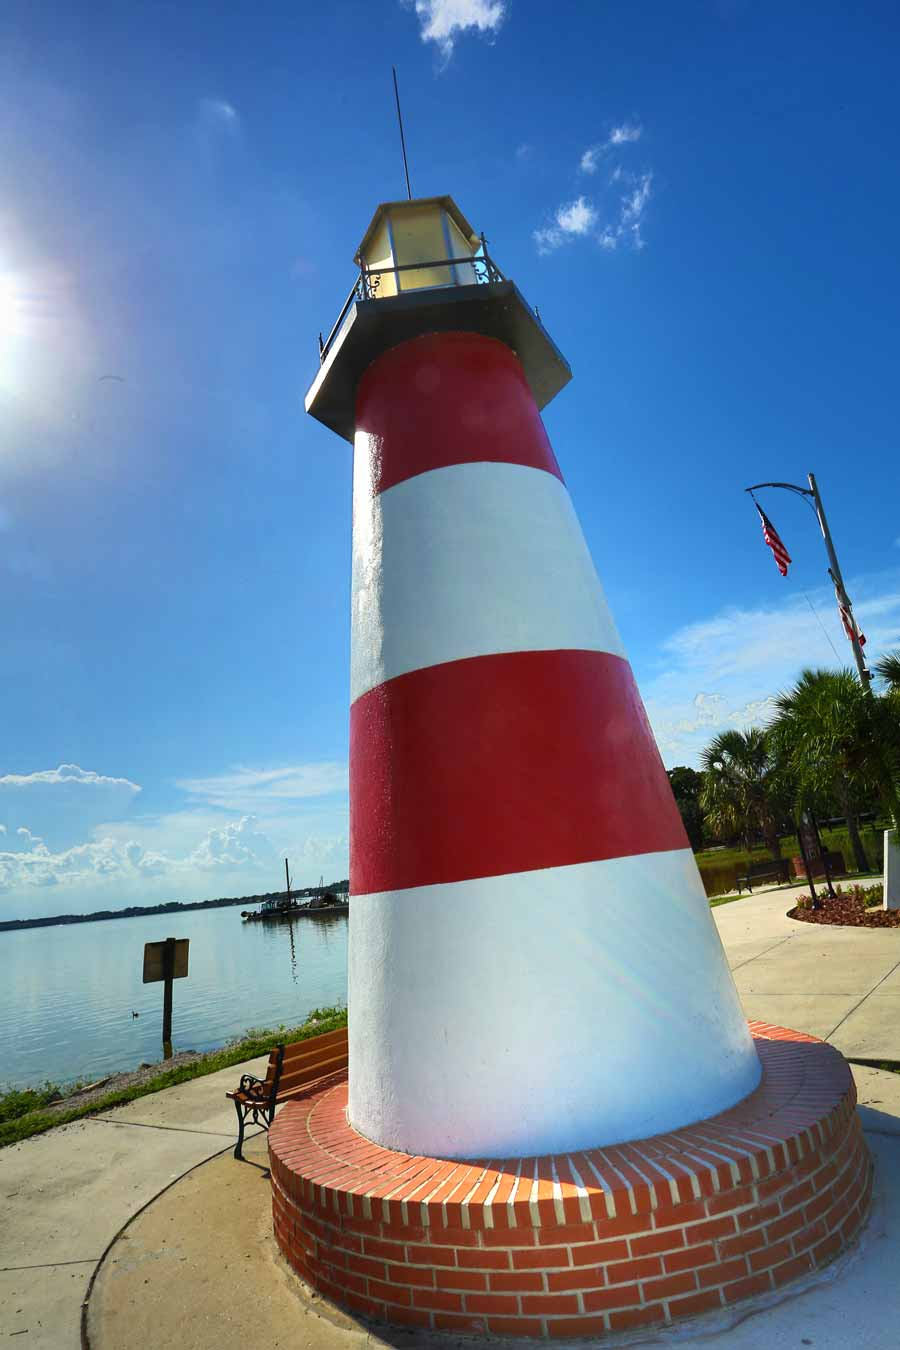 July 2014: Florida's only inland freshwater lighthouse, this picturesque 35-foot beacon at the end of Grantham Point announces Mount Dora's uniqueness.